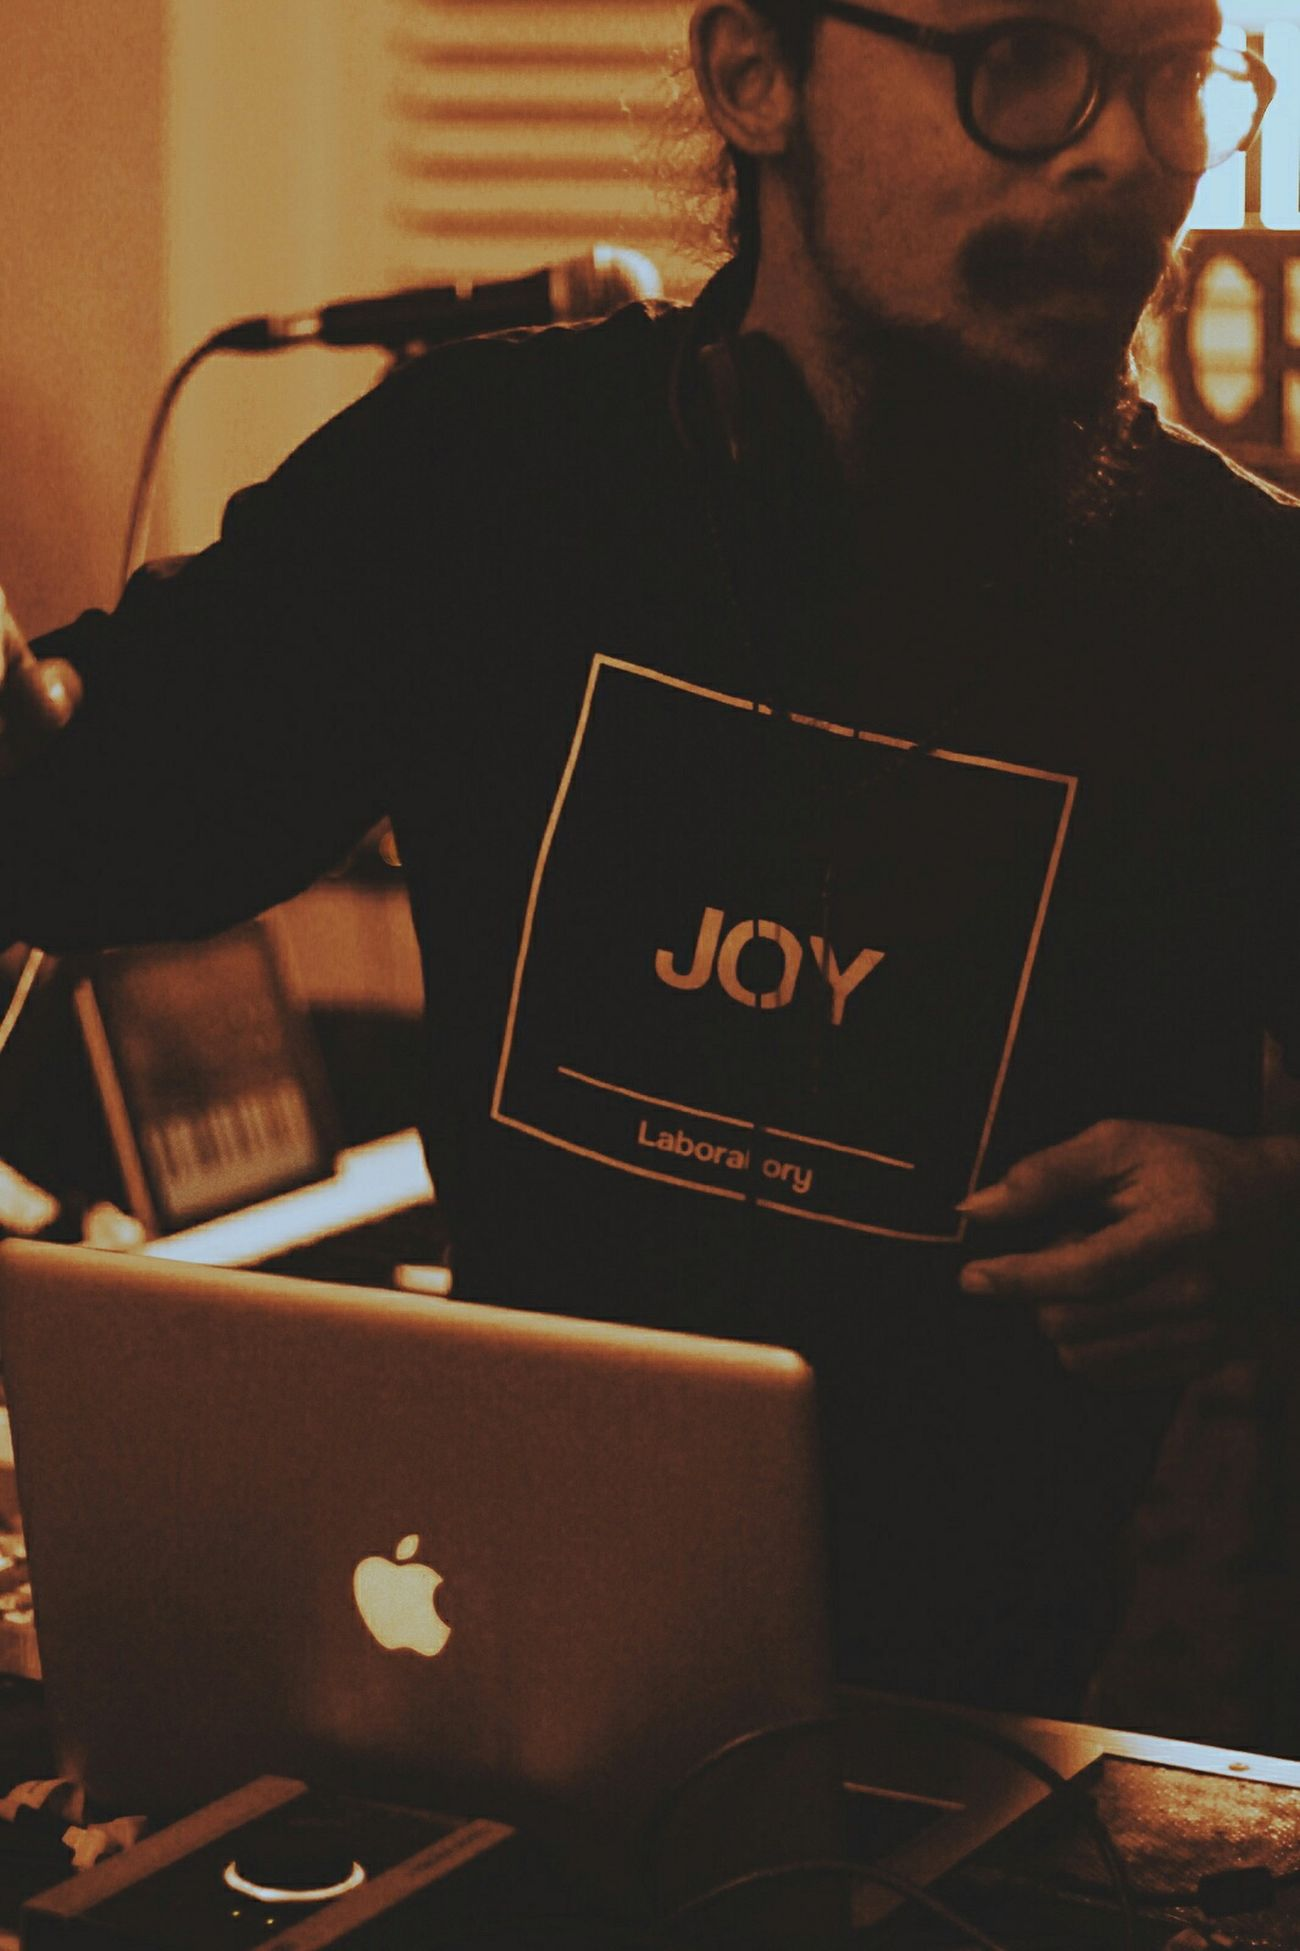 Portrait Of A Friend Taking Photos Peoplephotography Endorsement Blackstockingmusic Joylabsclothing Musicphotography LiveMusic Enjoying Life Taking Photos